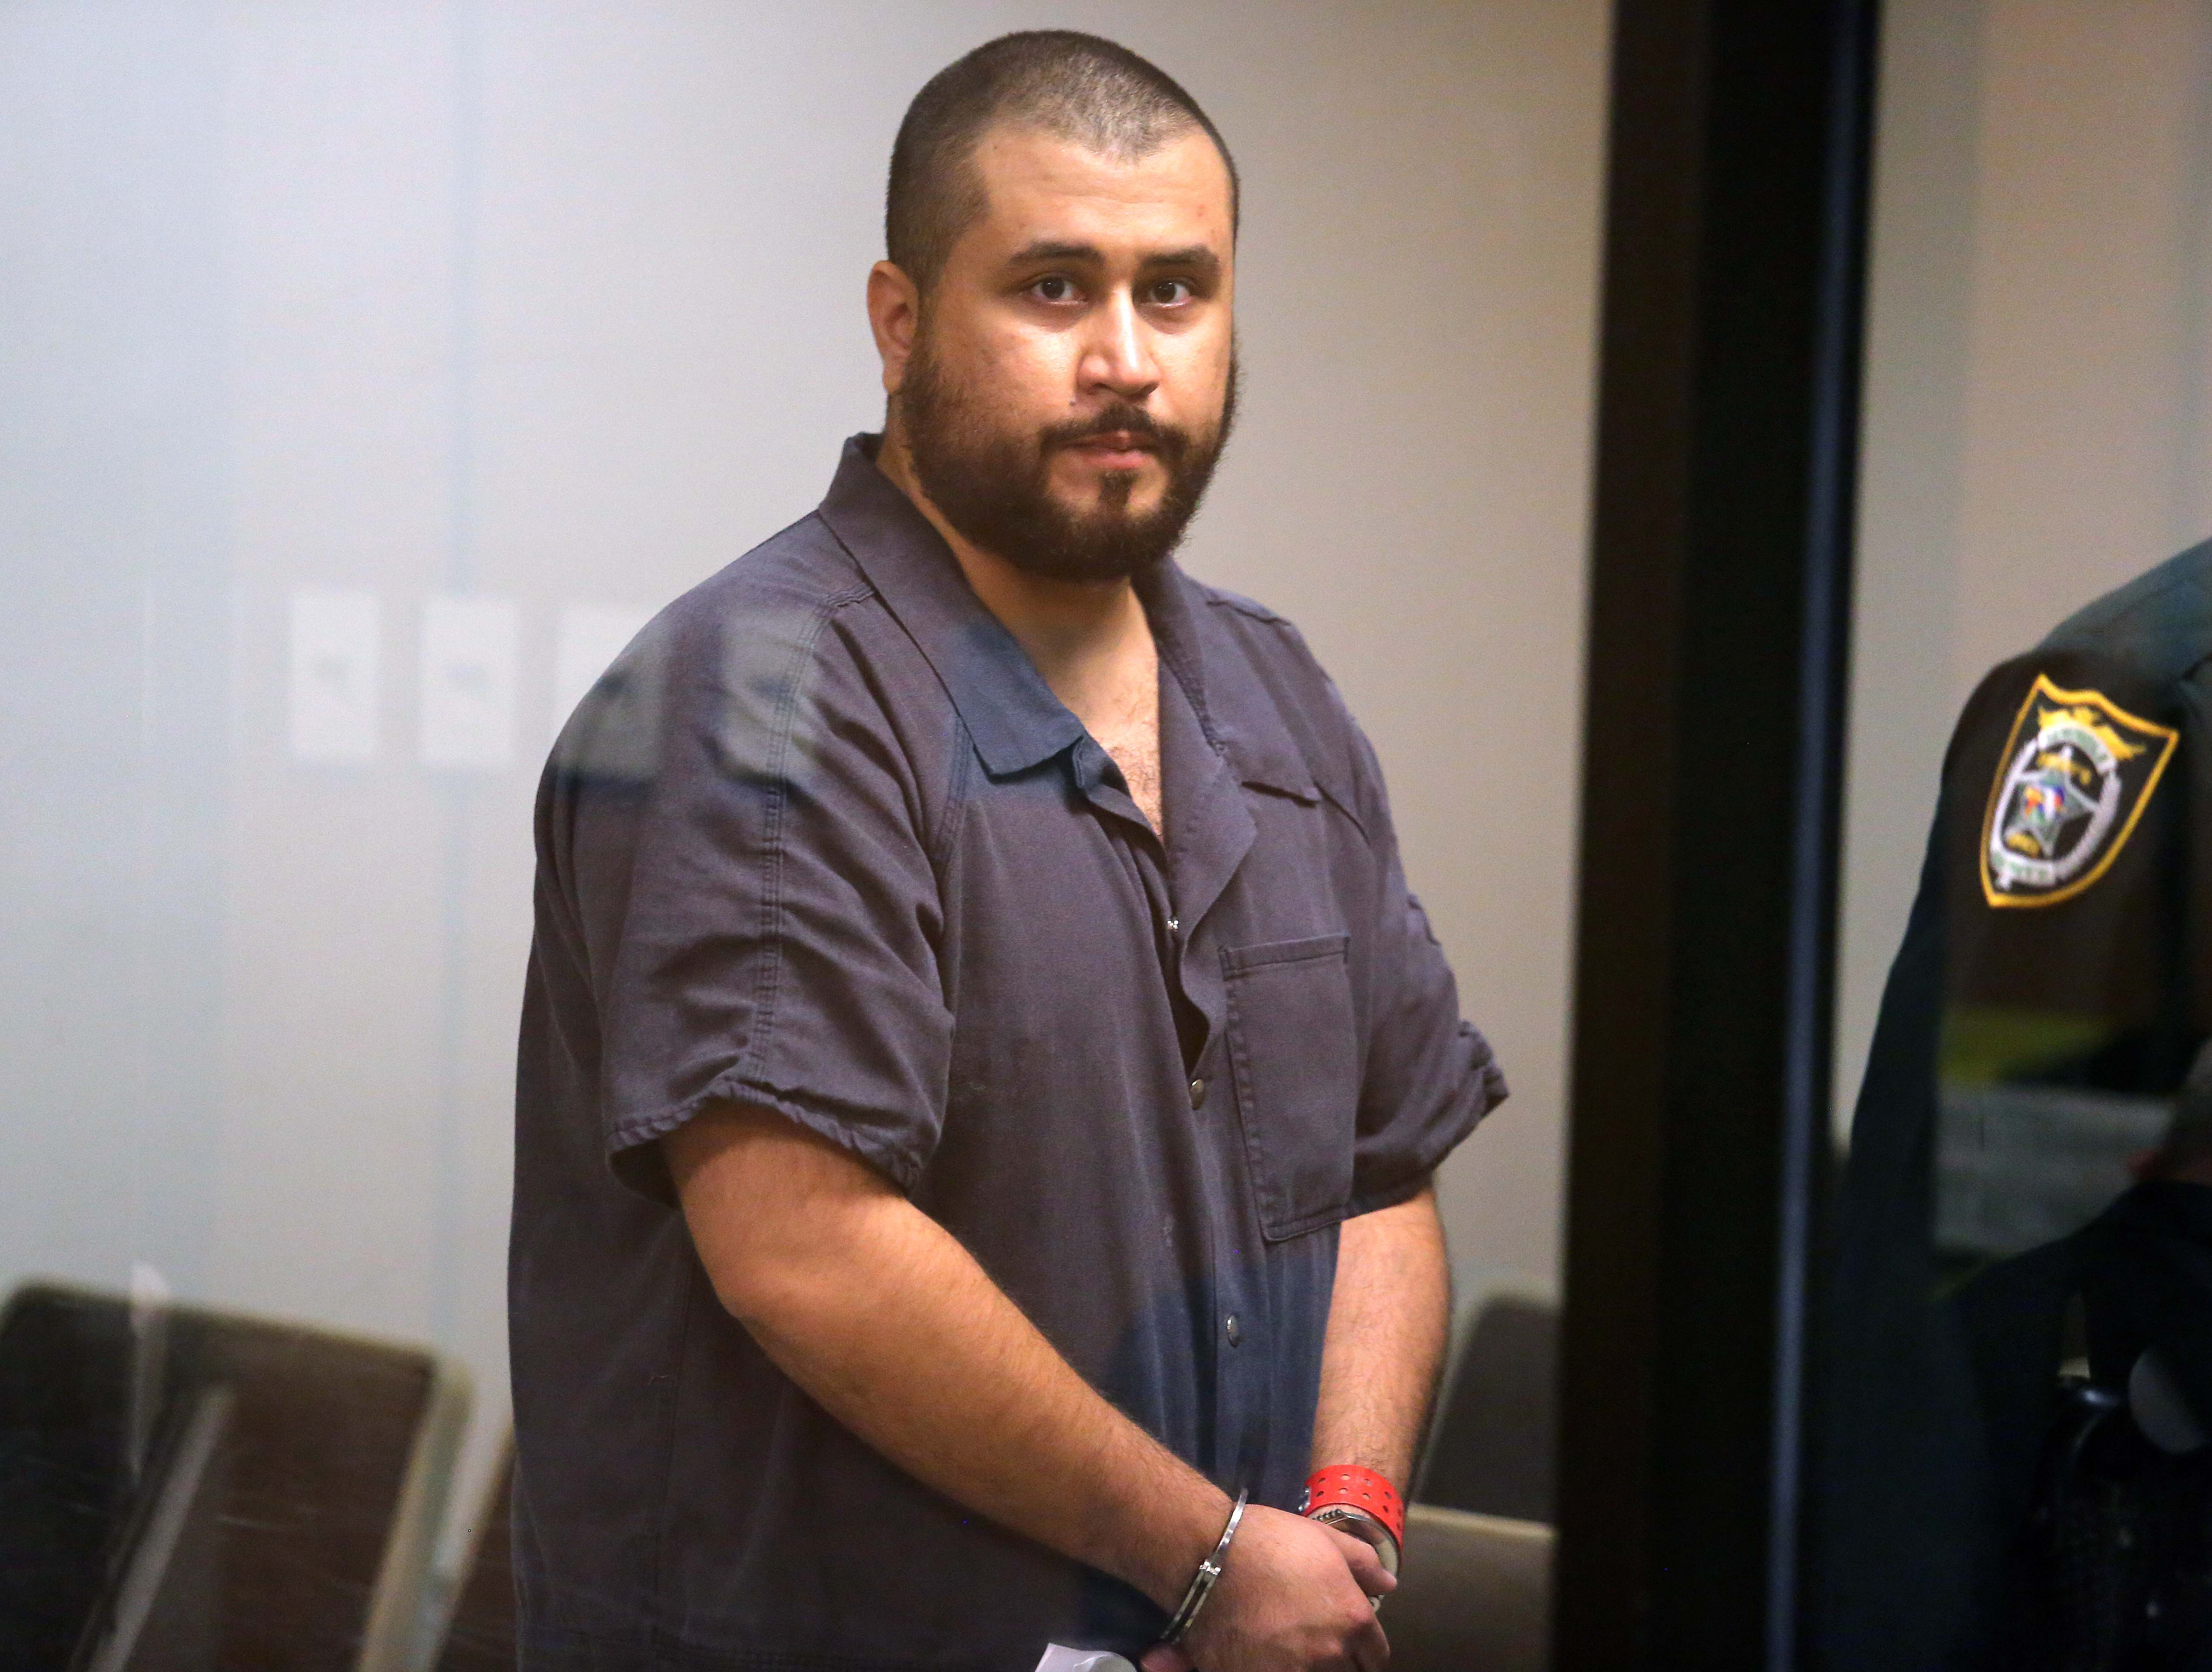 SANFORD, FL - NOVEMBER 19: George Zimmerman, the acquitted shooter in the death of Trayvon Martin, arrives in Courtroom J2 to face a Seminole circuit judge during a first-appearance hearing on charges including aggravated assault stemming from a fight with his girlfriend November 19, 2013 in Sanford, Florida. Zimmerman, 30, was arrested after police responded to a domestic disturbance call at a house. He was acquitted in July of all charges in the shooting death of unarmed, black teenager, Trayvon Martin.